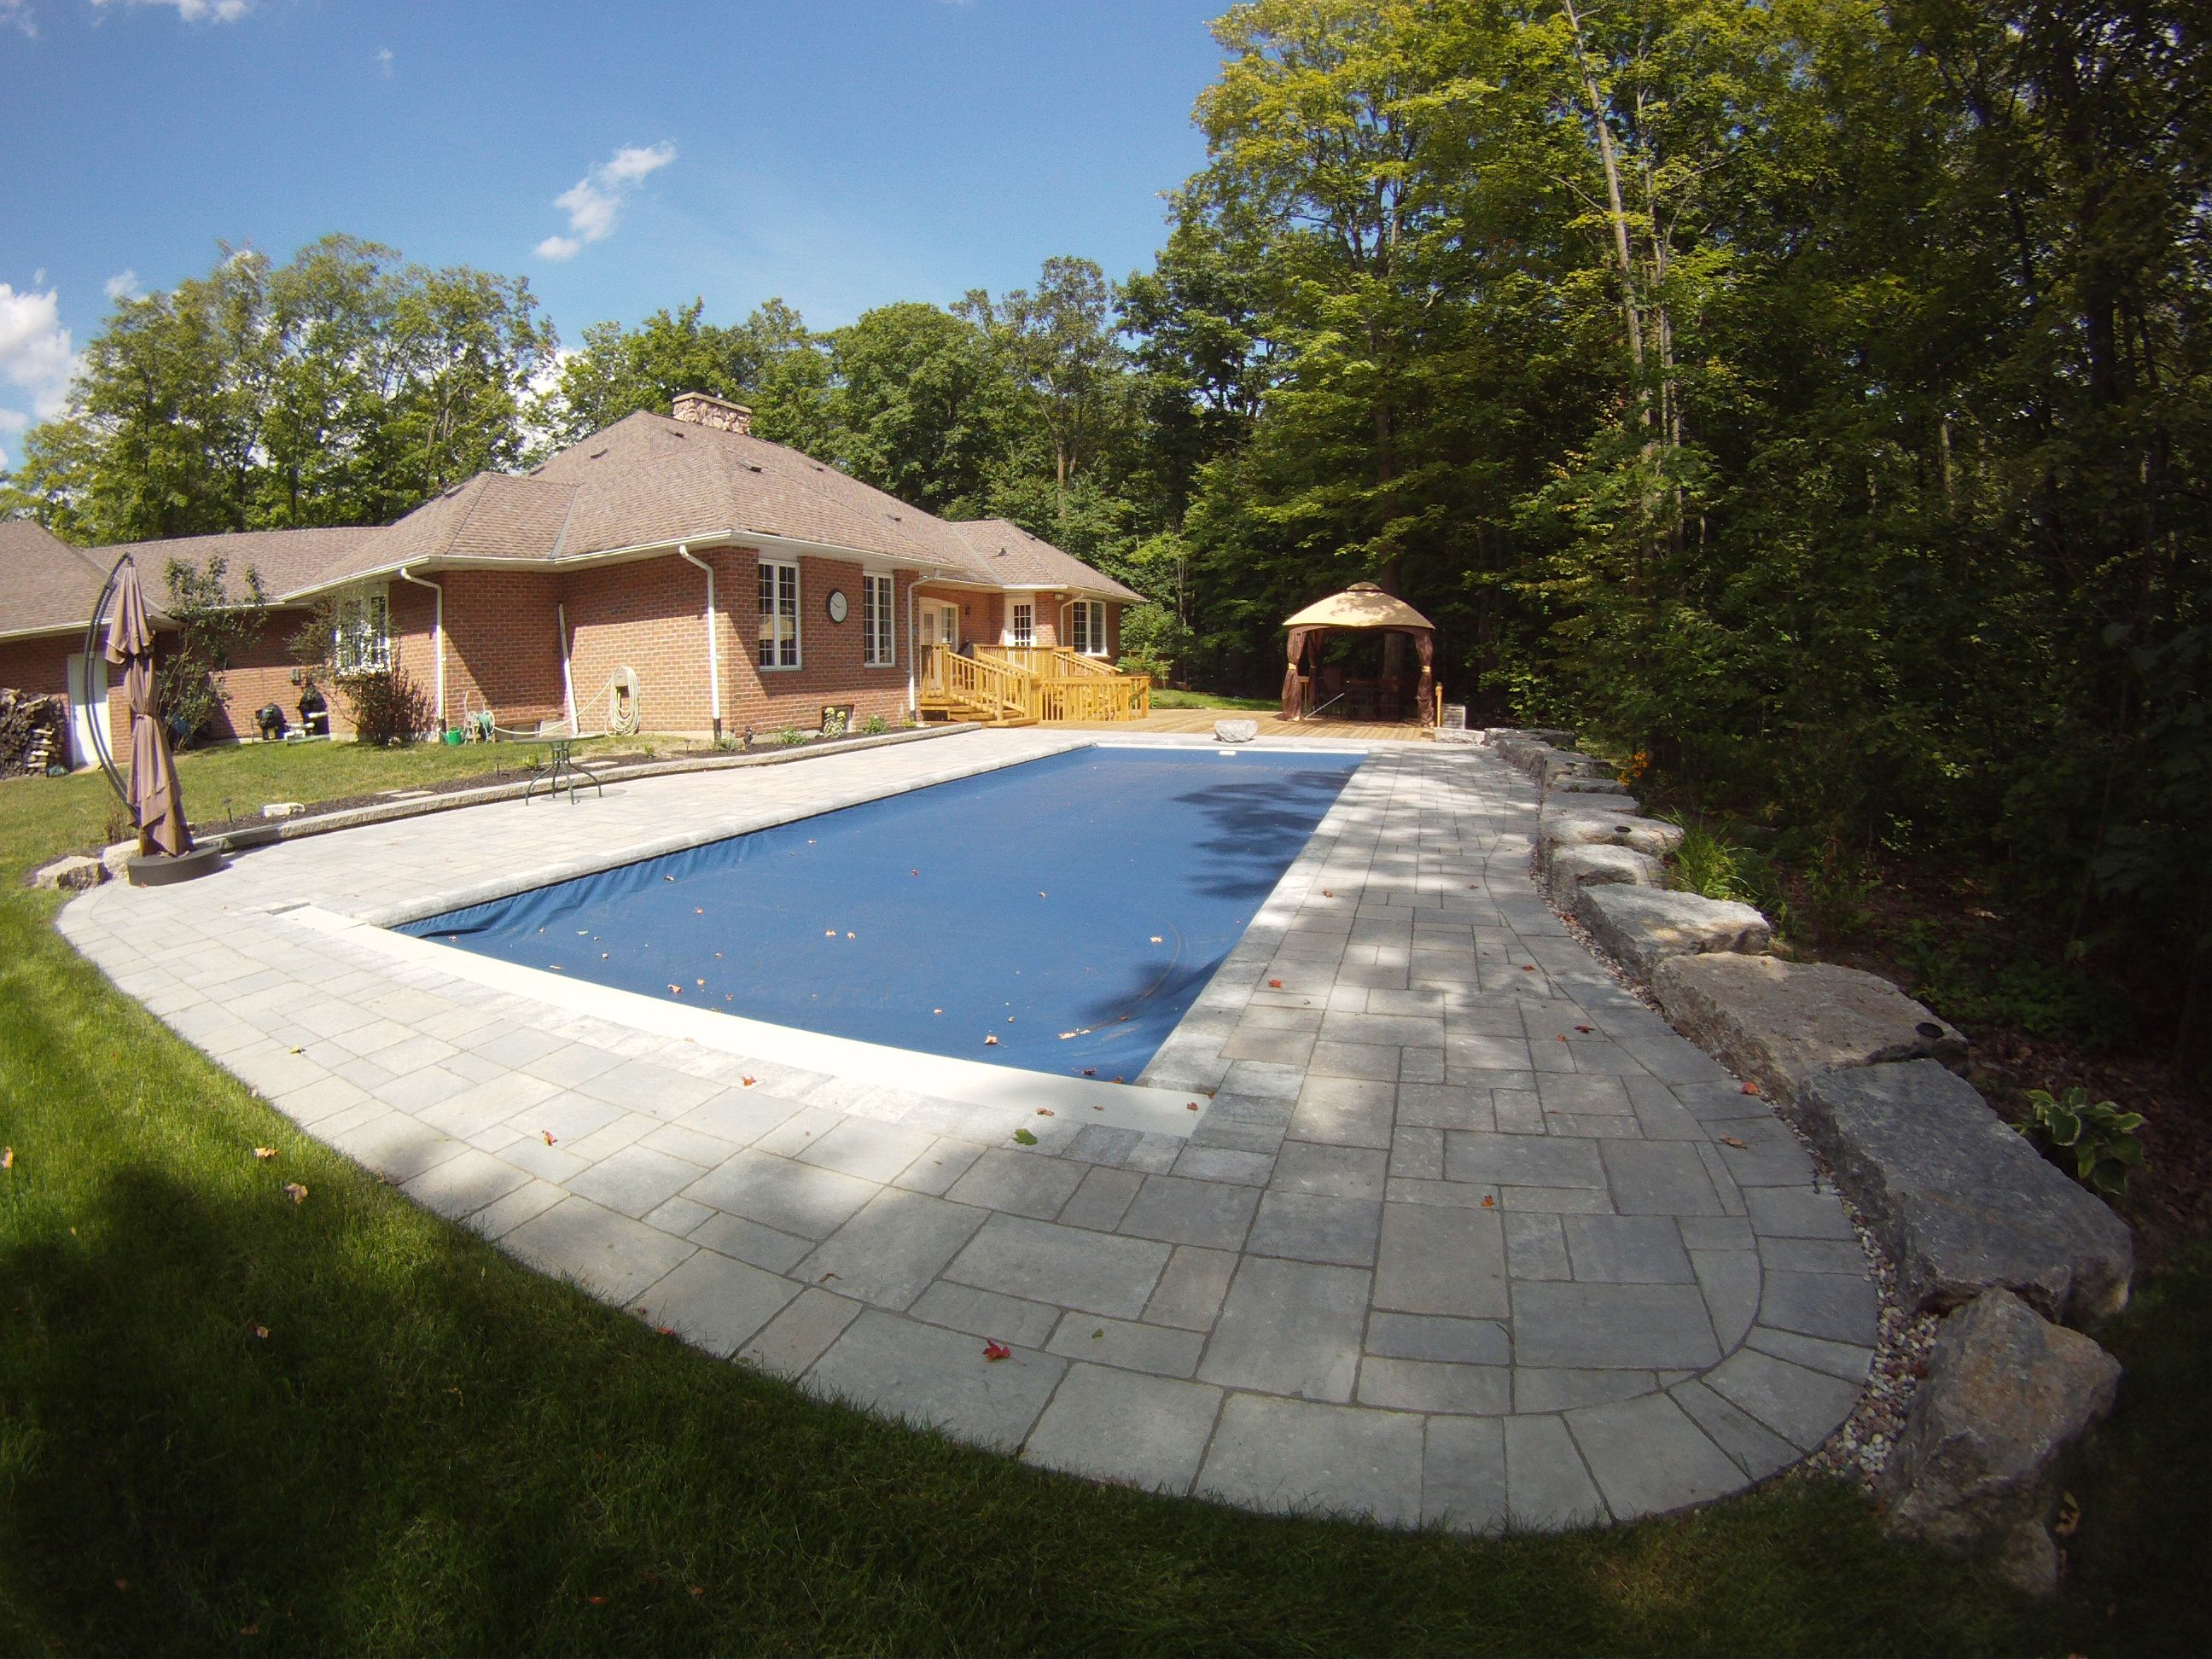 Goliath 1641 With Automatic Pool Cover Extended. Keep Your Fiberglass Pool  Safe, Clean And